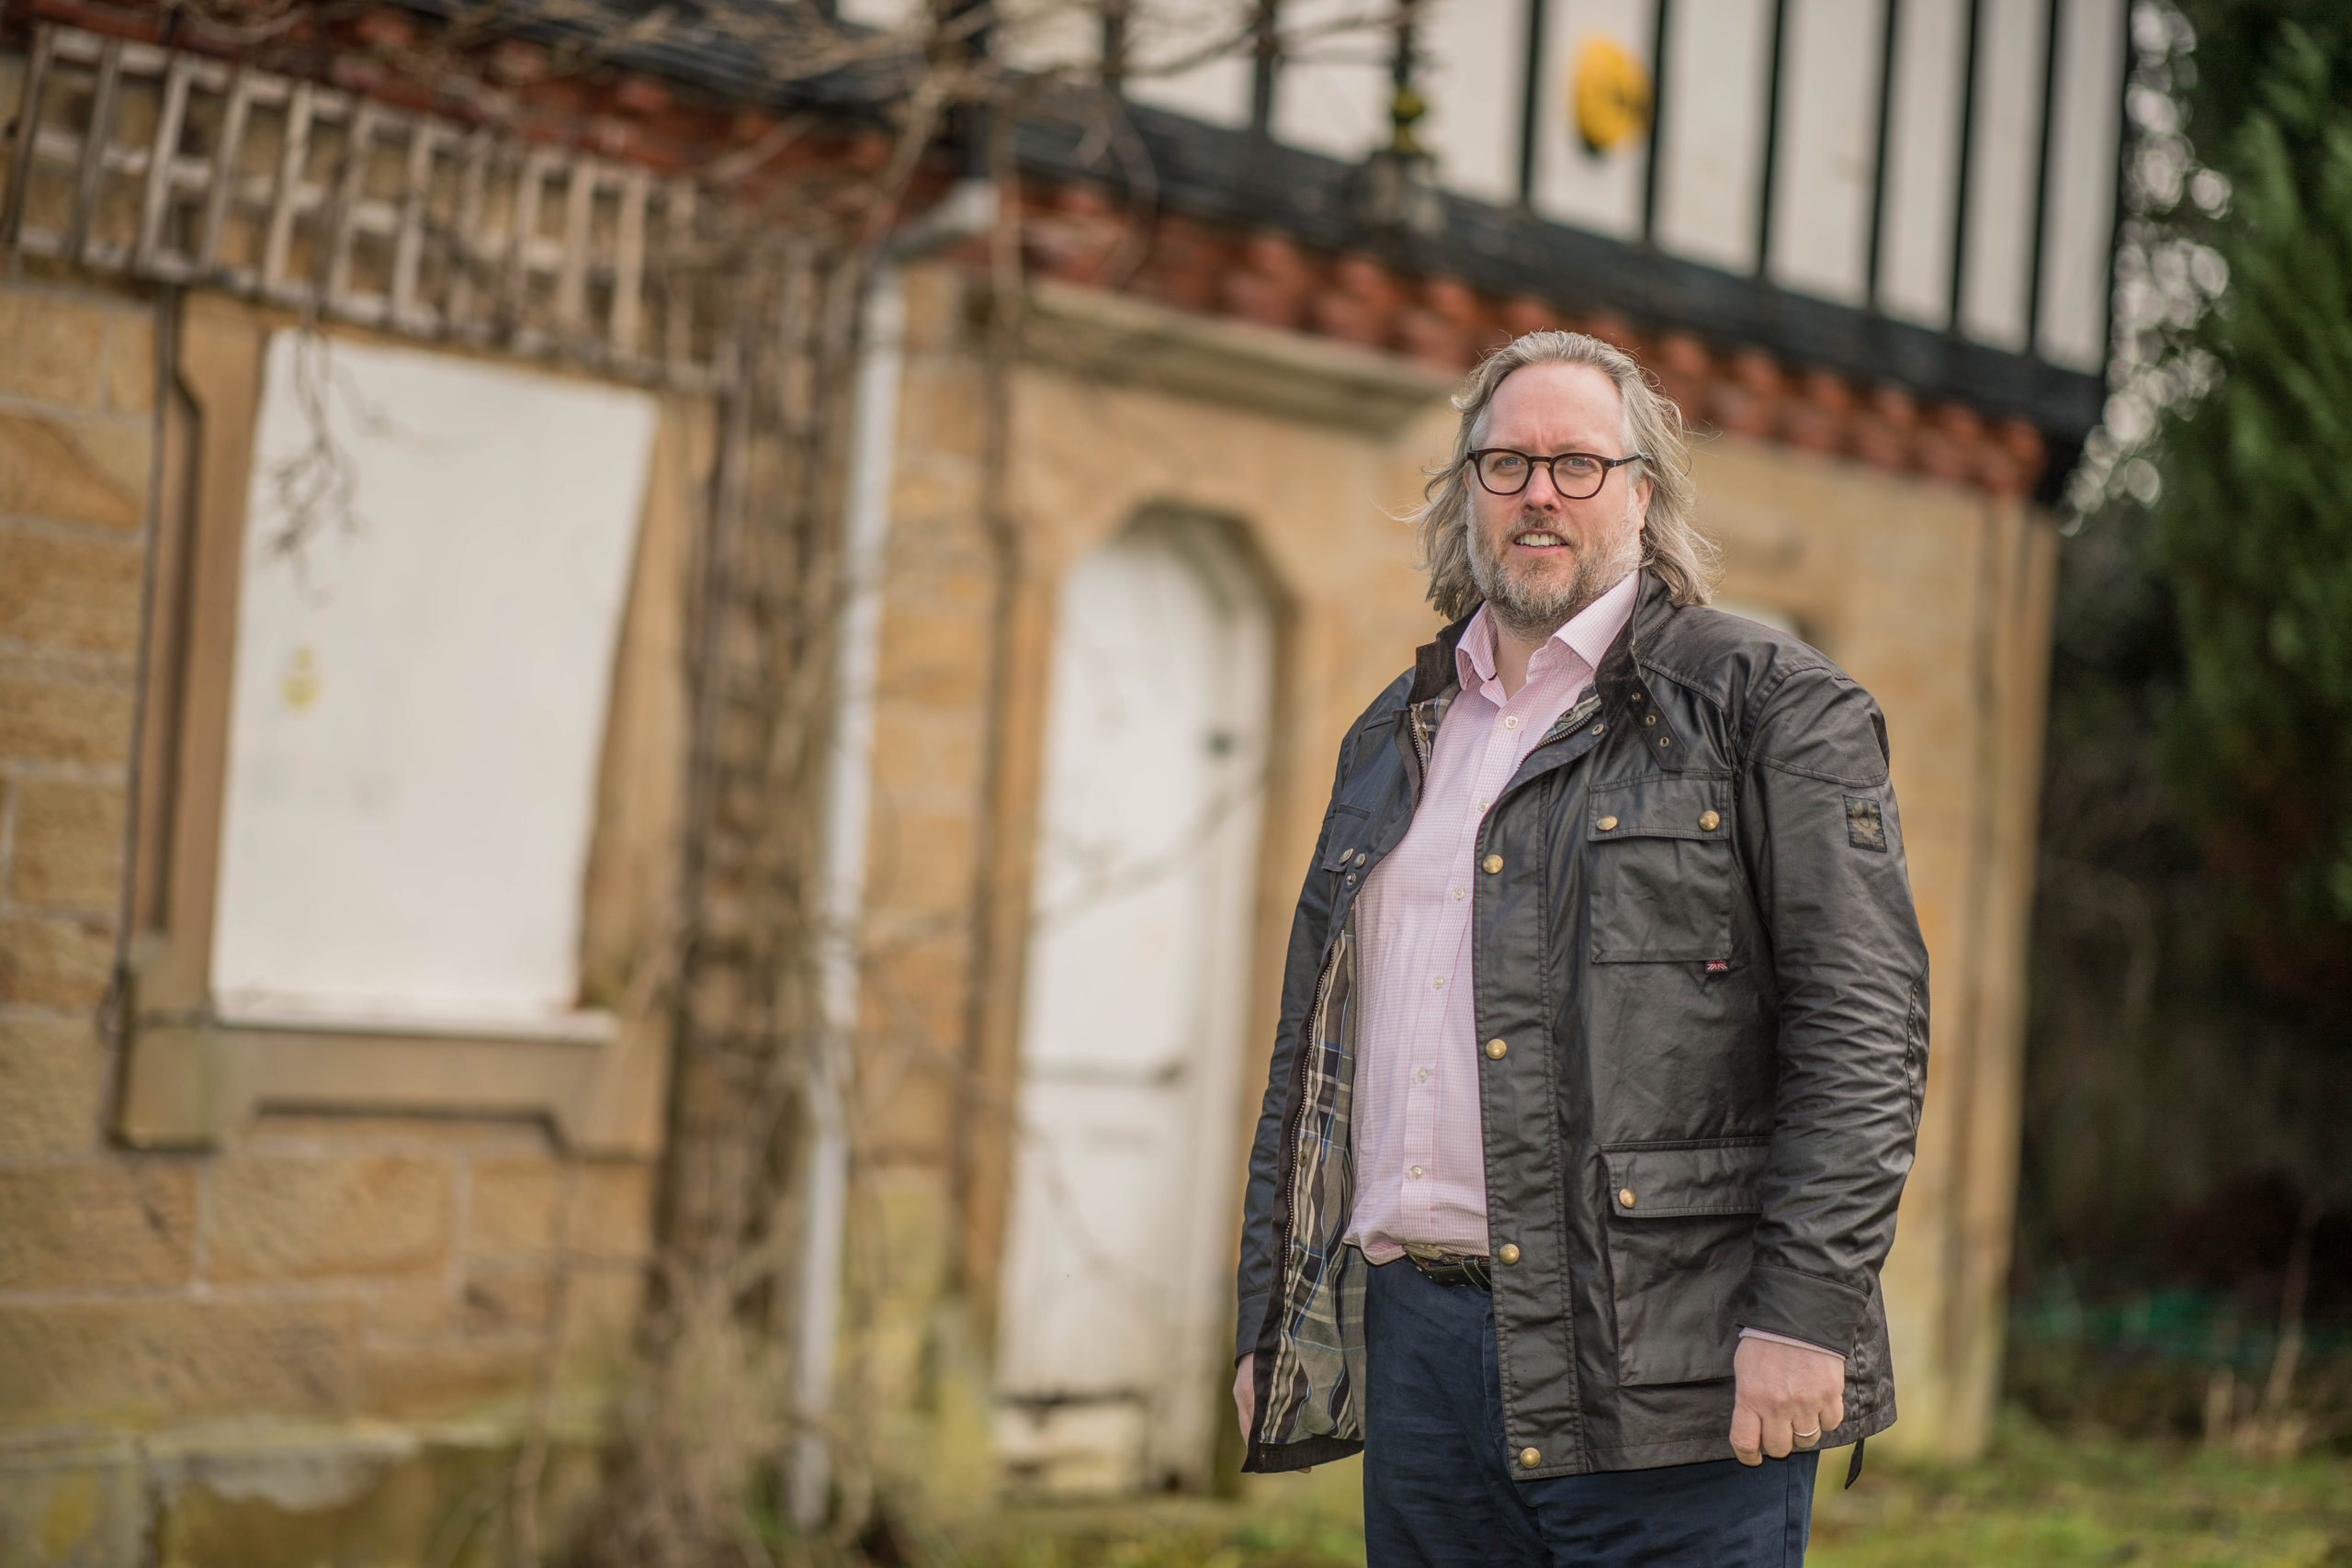 Plans unveiled to transform Victorian gate house at 'Downton Abbey' style historic hall and wedding venue